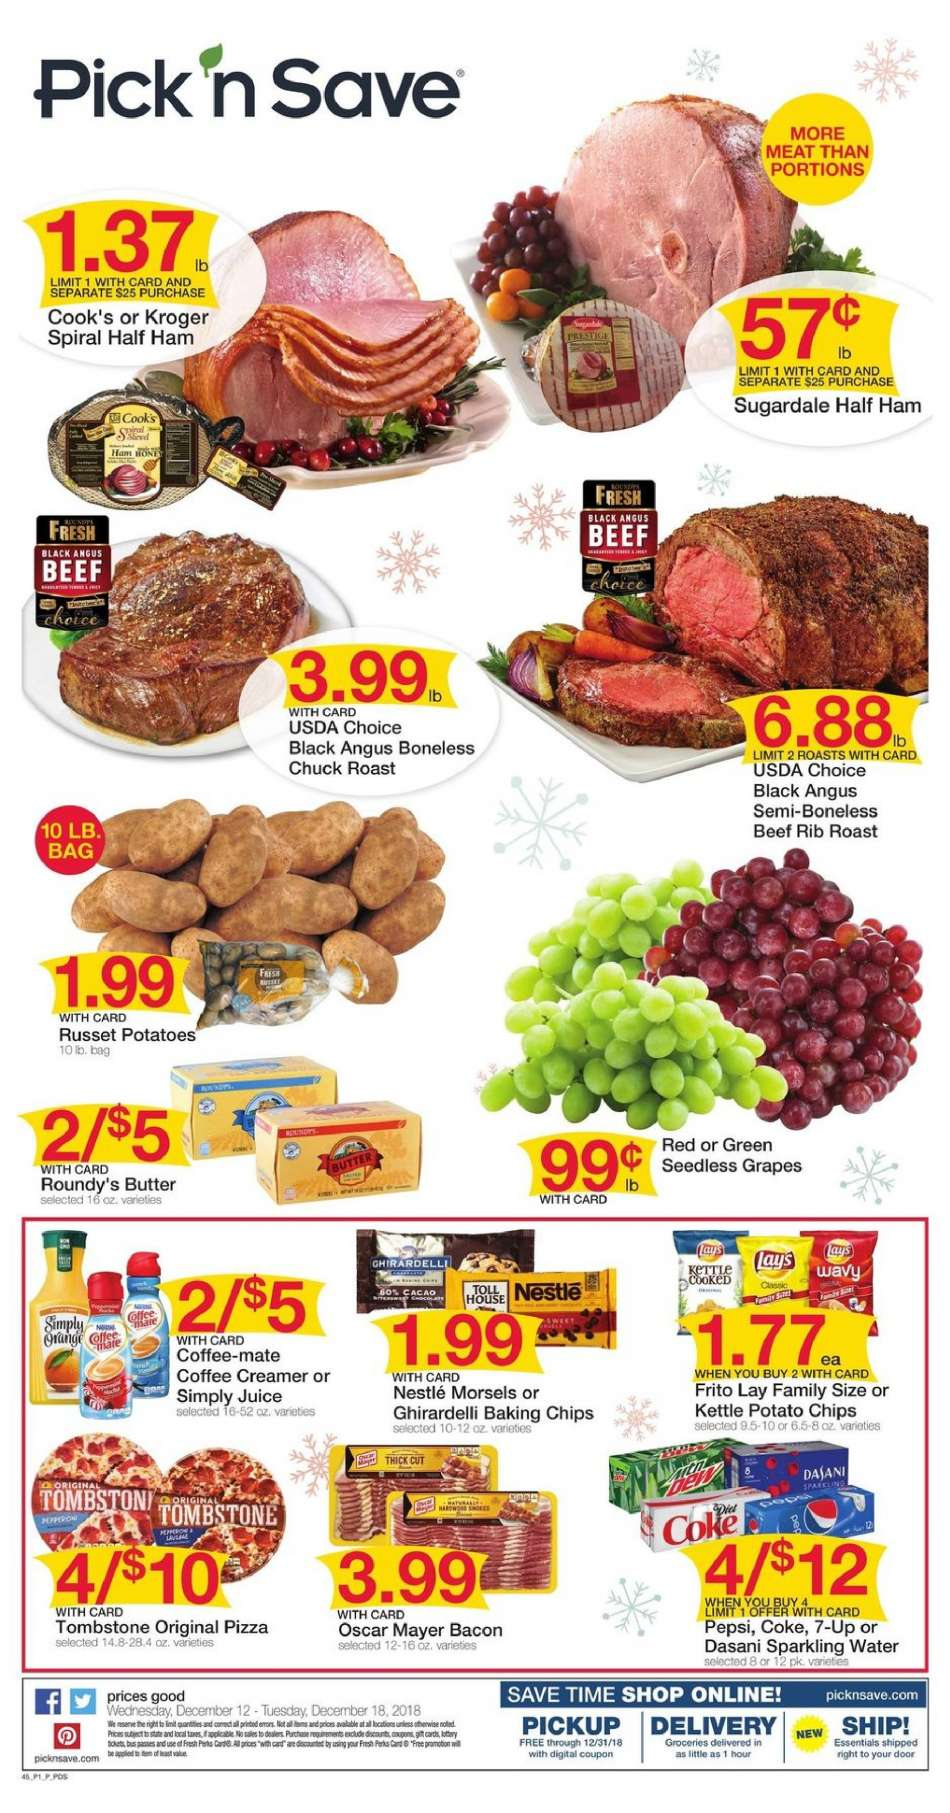 Pick N Save Flyer 12 2018 18 S Products